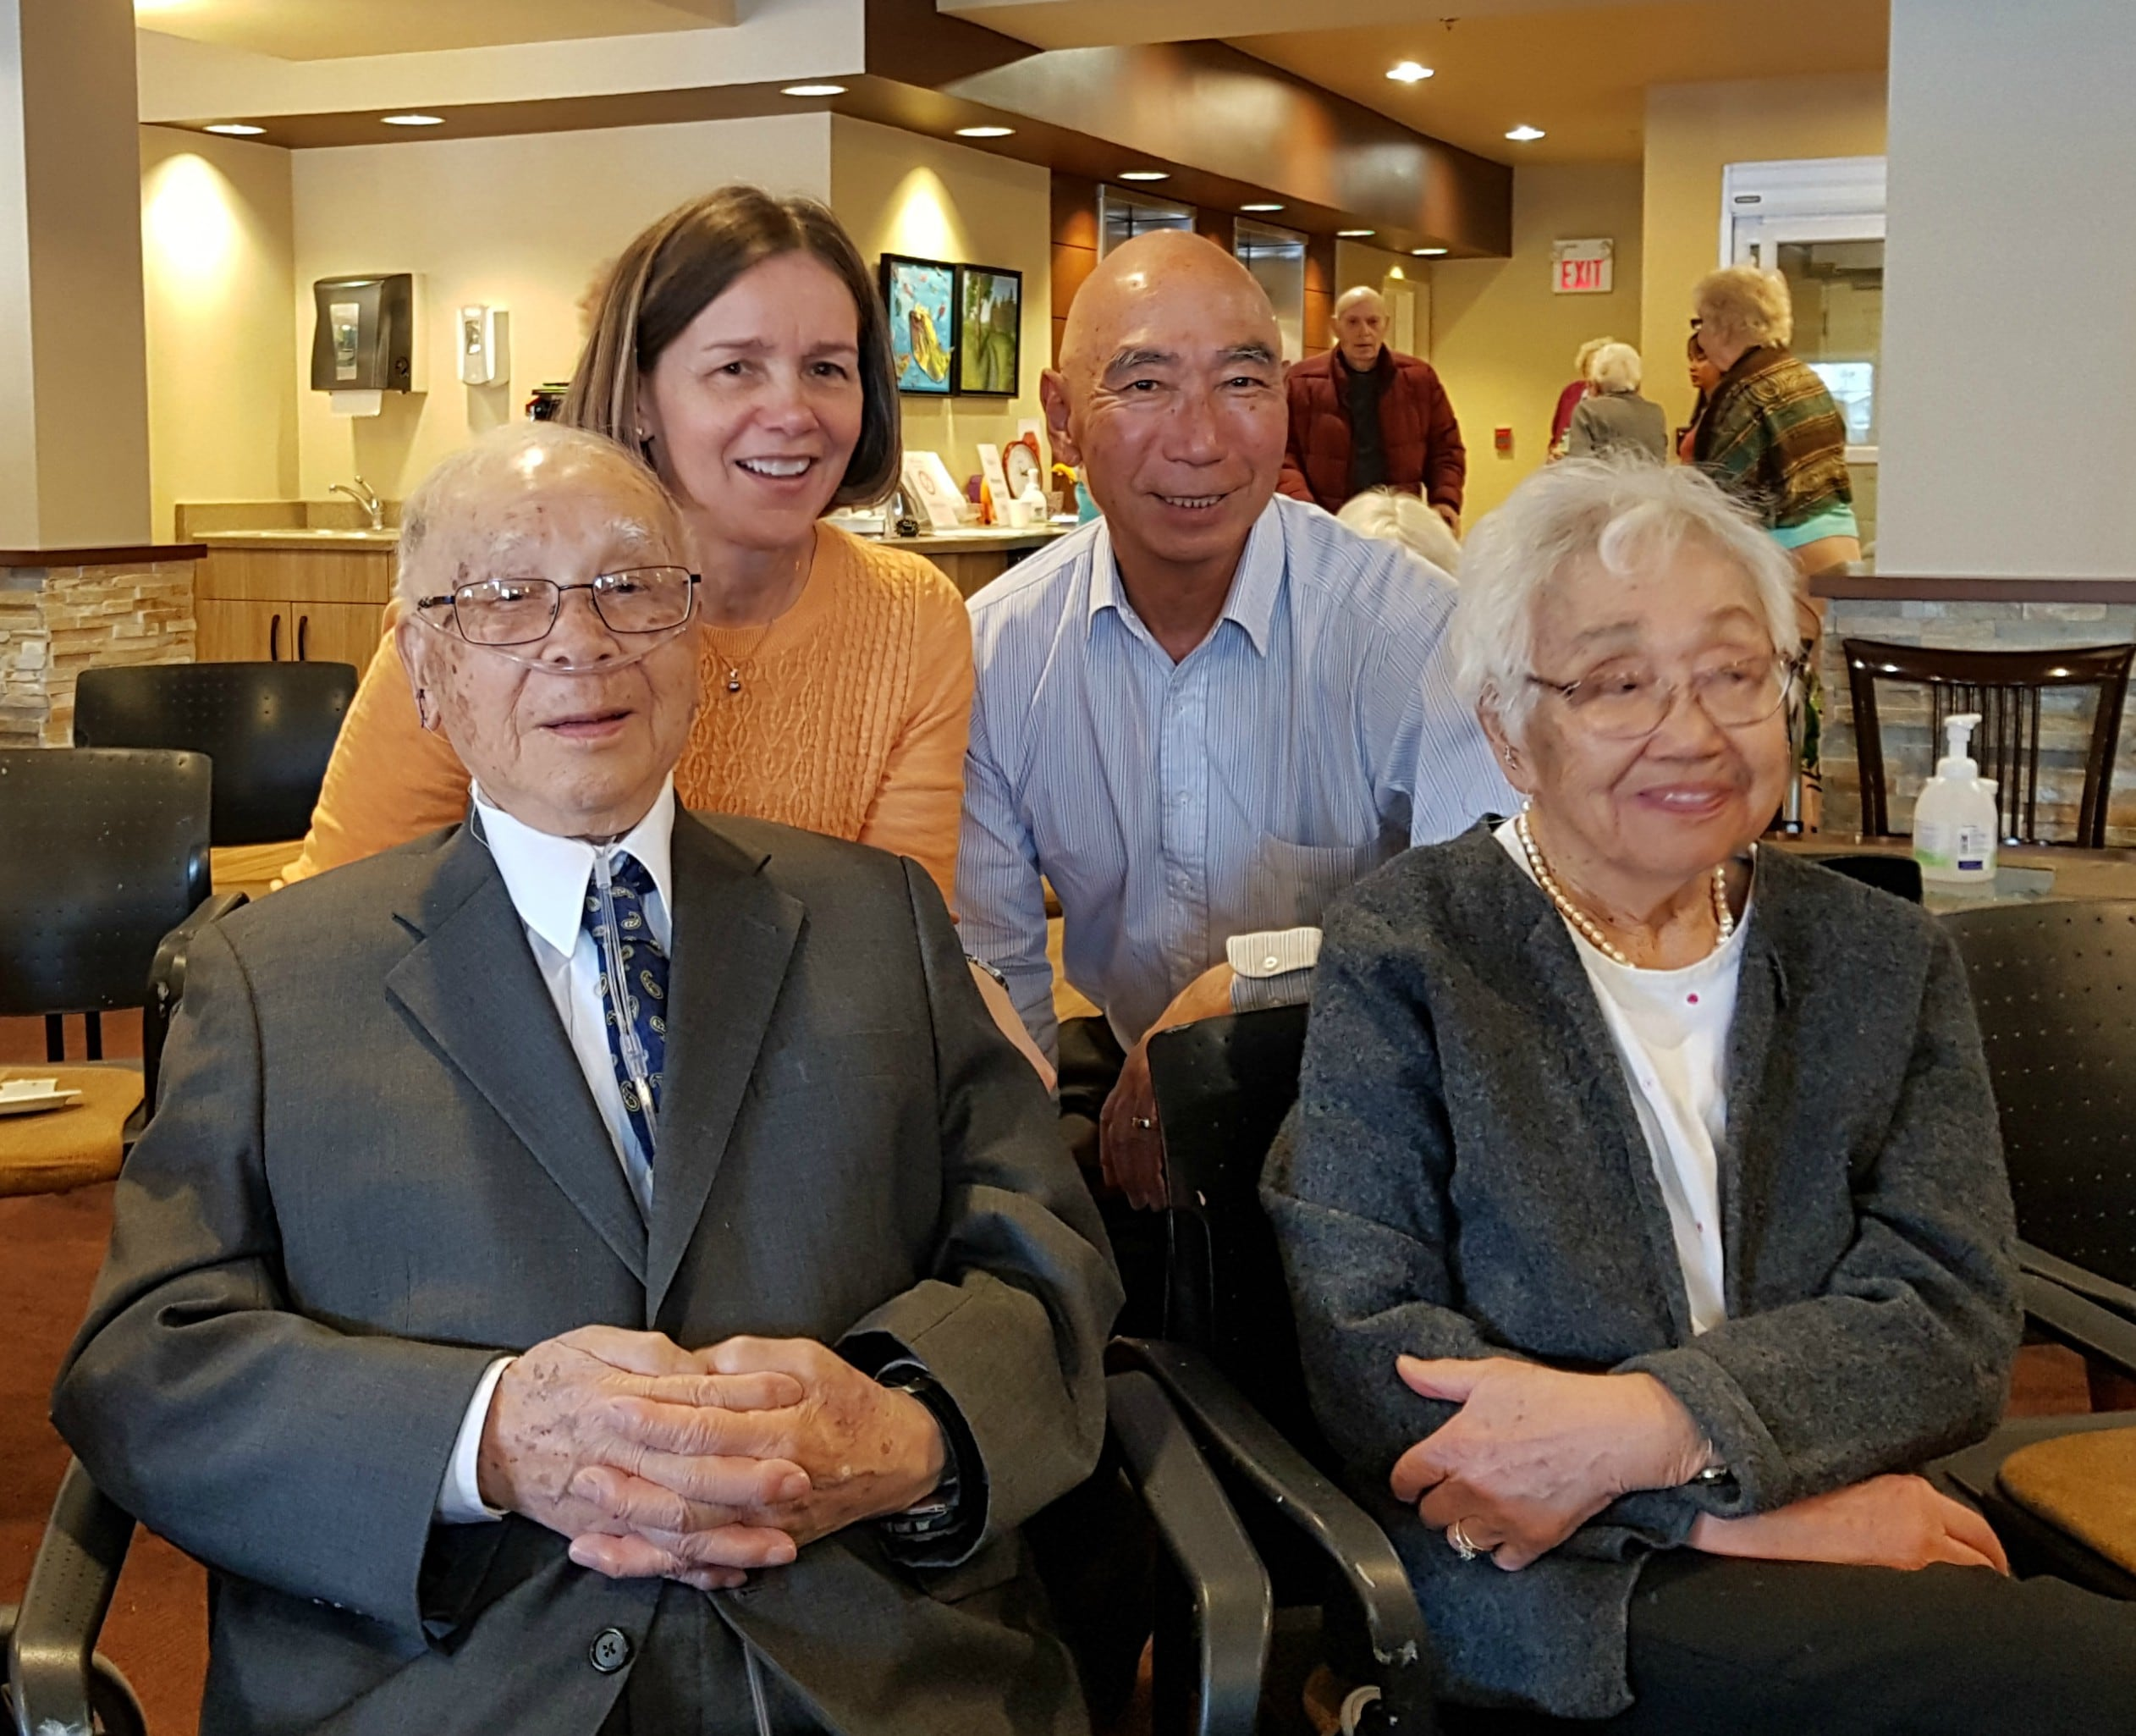 Hugh Kuwahara celebrates his 104th birthday with wife Kay and their two children